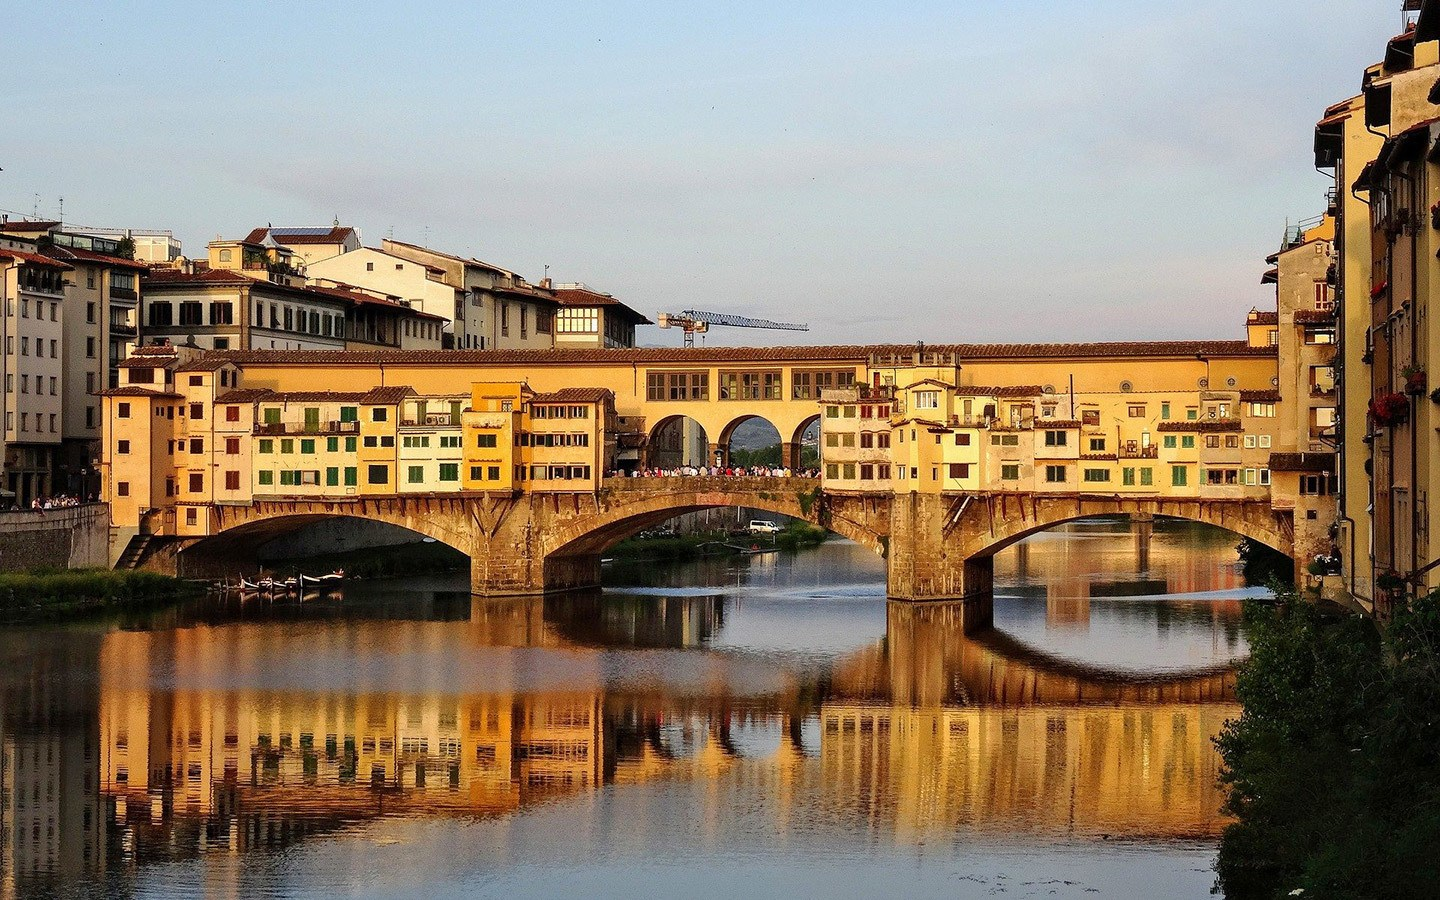 The Ponte Vecchio bridge in Florence at sunset